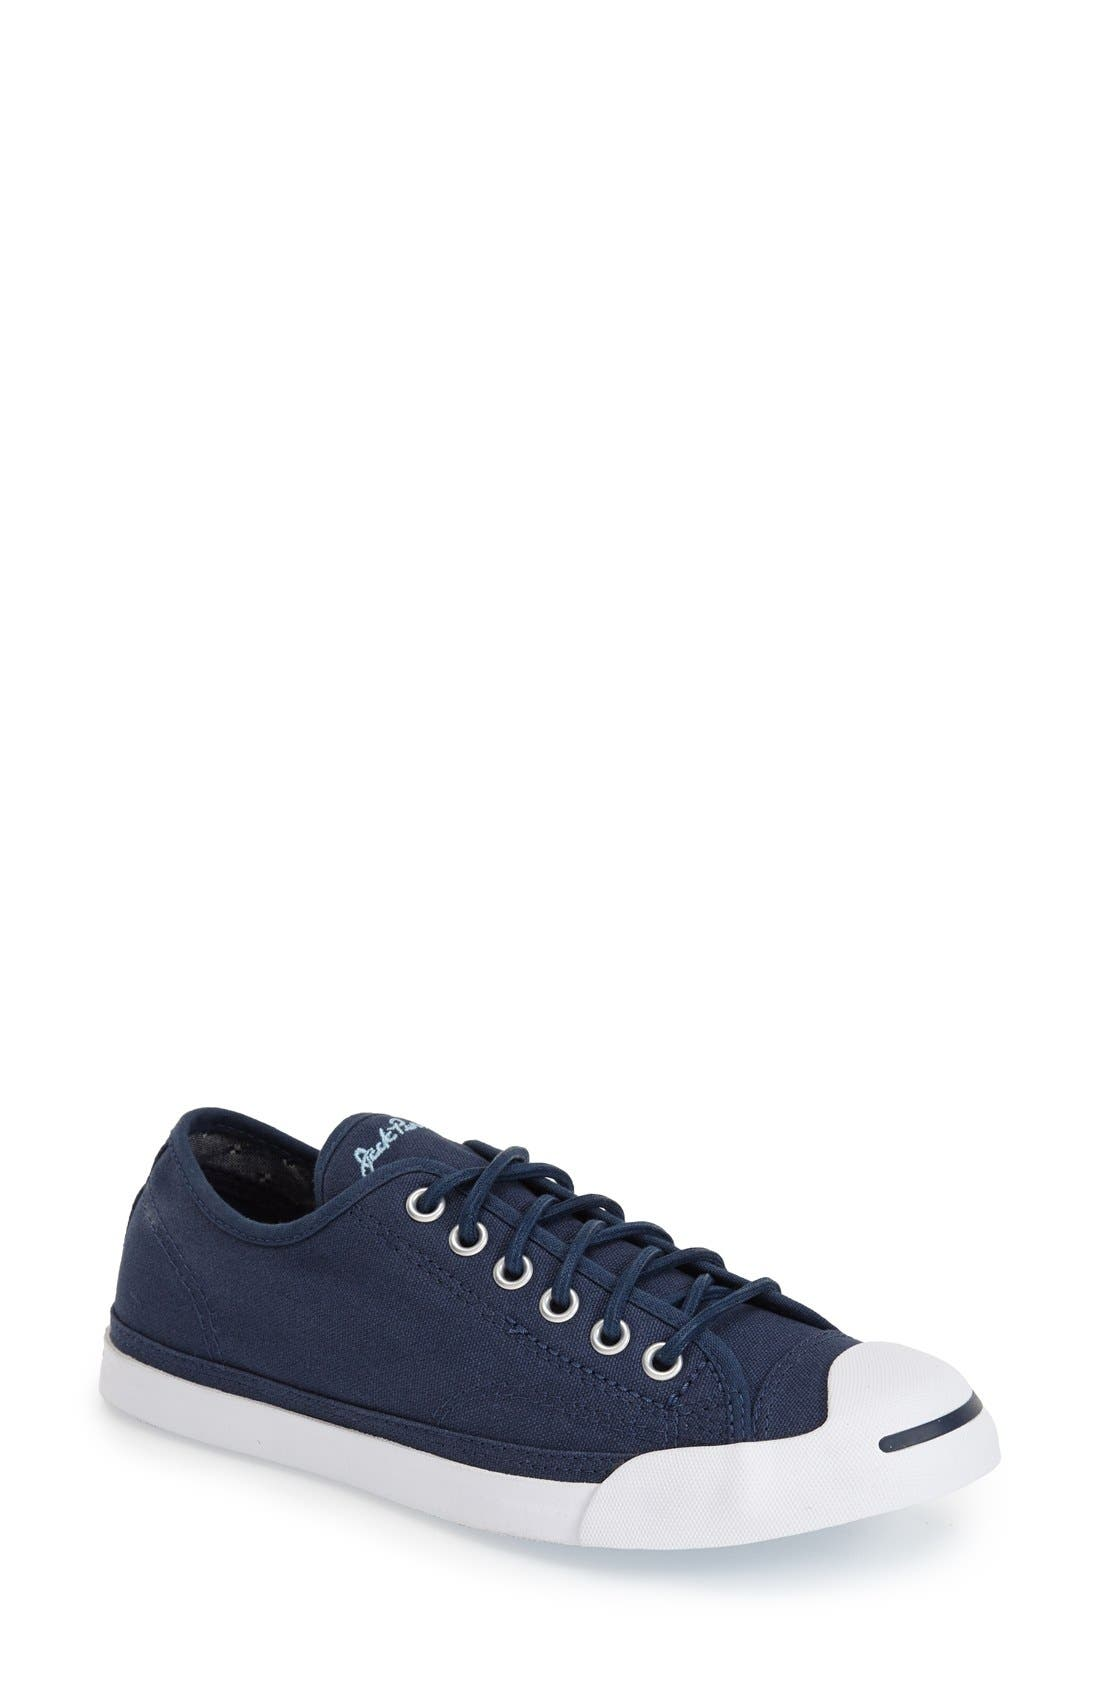 'Jack Purcell' Low Top Slip On Sneaker,                             Main thumbnail 2, color,